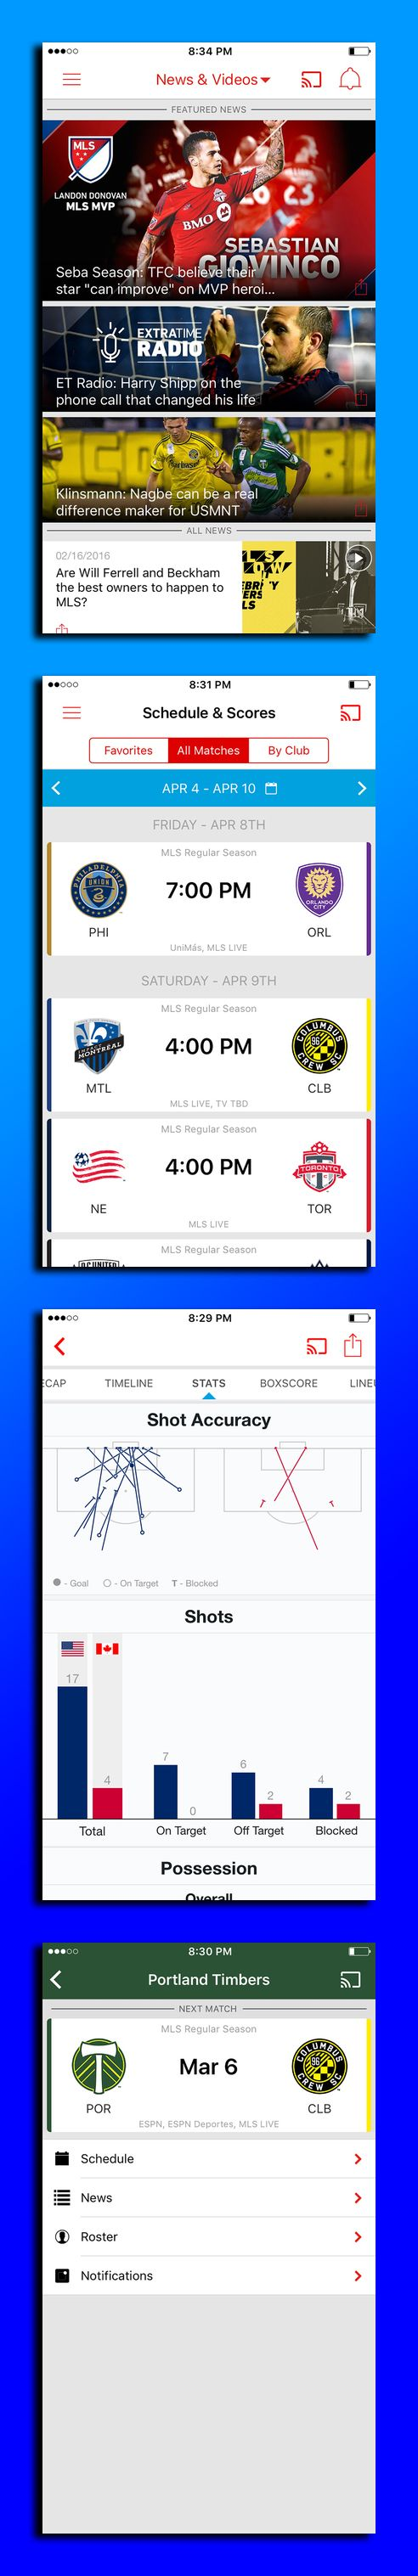 The official app of Major League Soccer keeps you connected with the latest news, highlights, scores, standings, and analysis all for free.